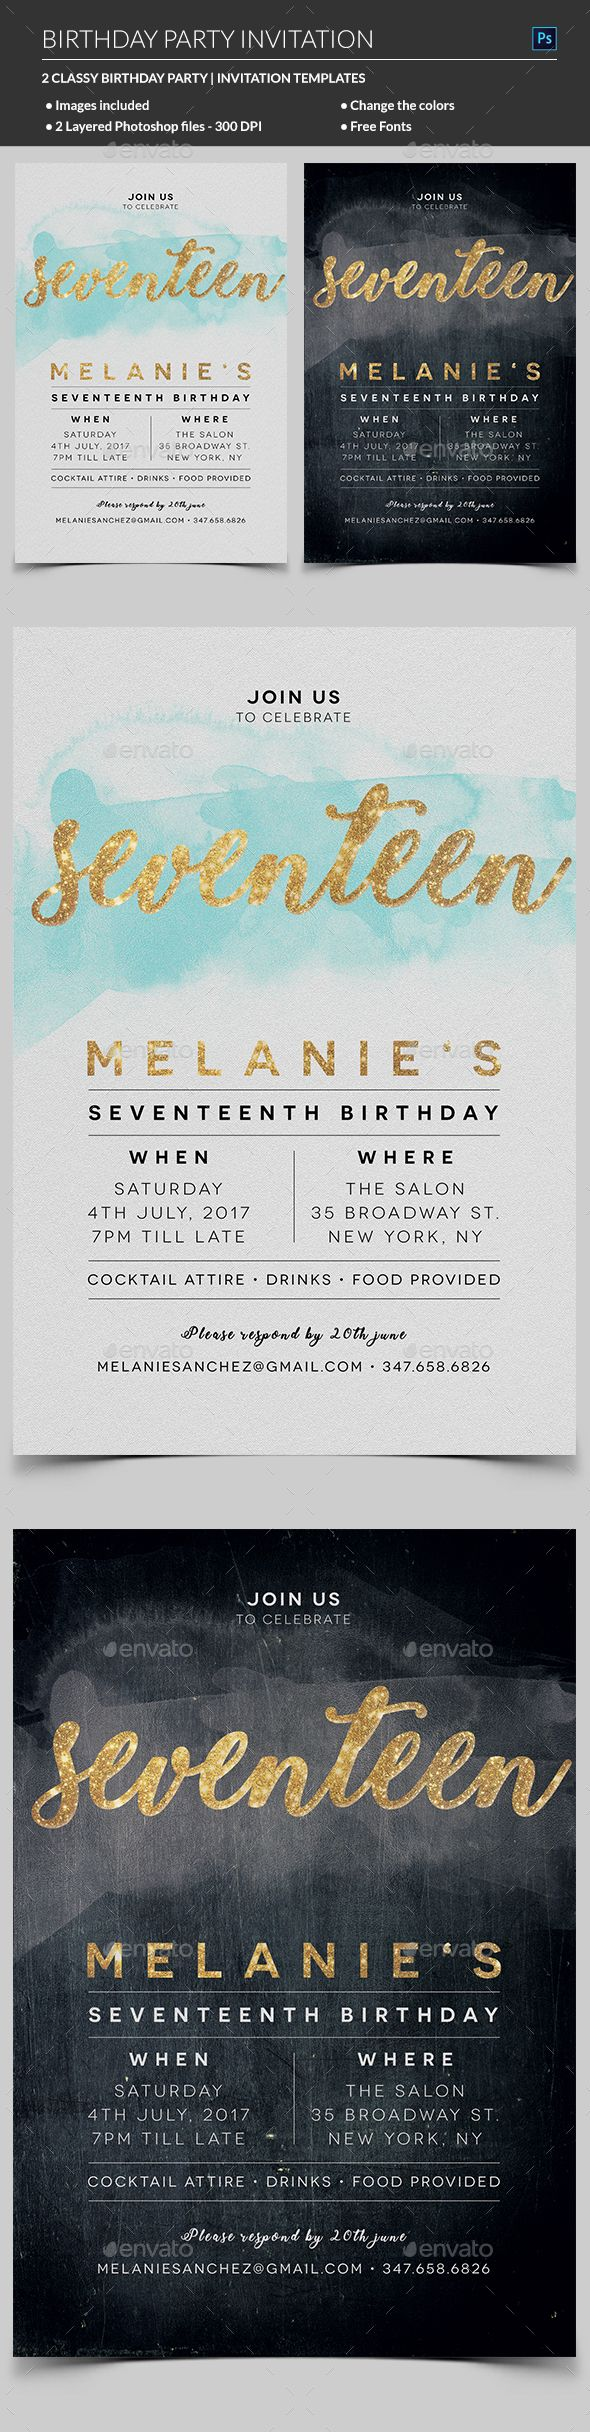 business event invitation templates%0A Elegant Birthday Invitation